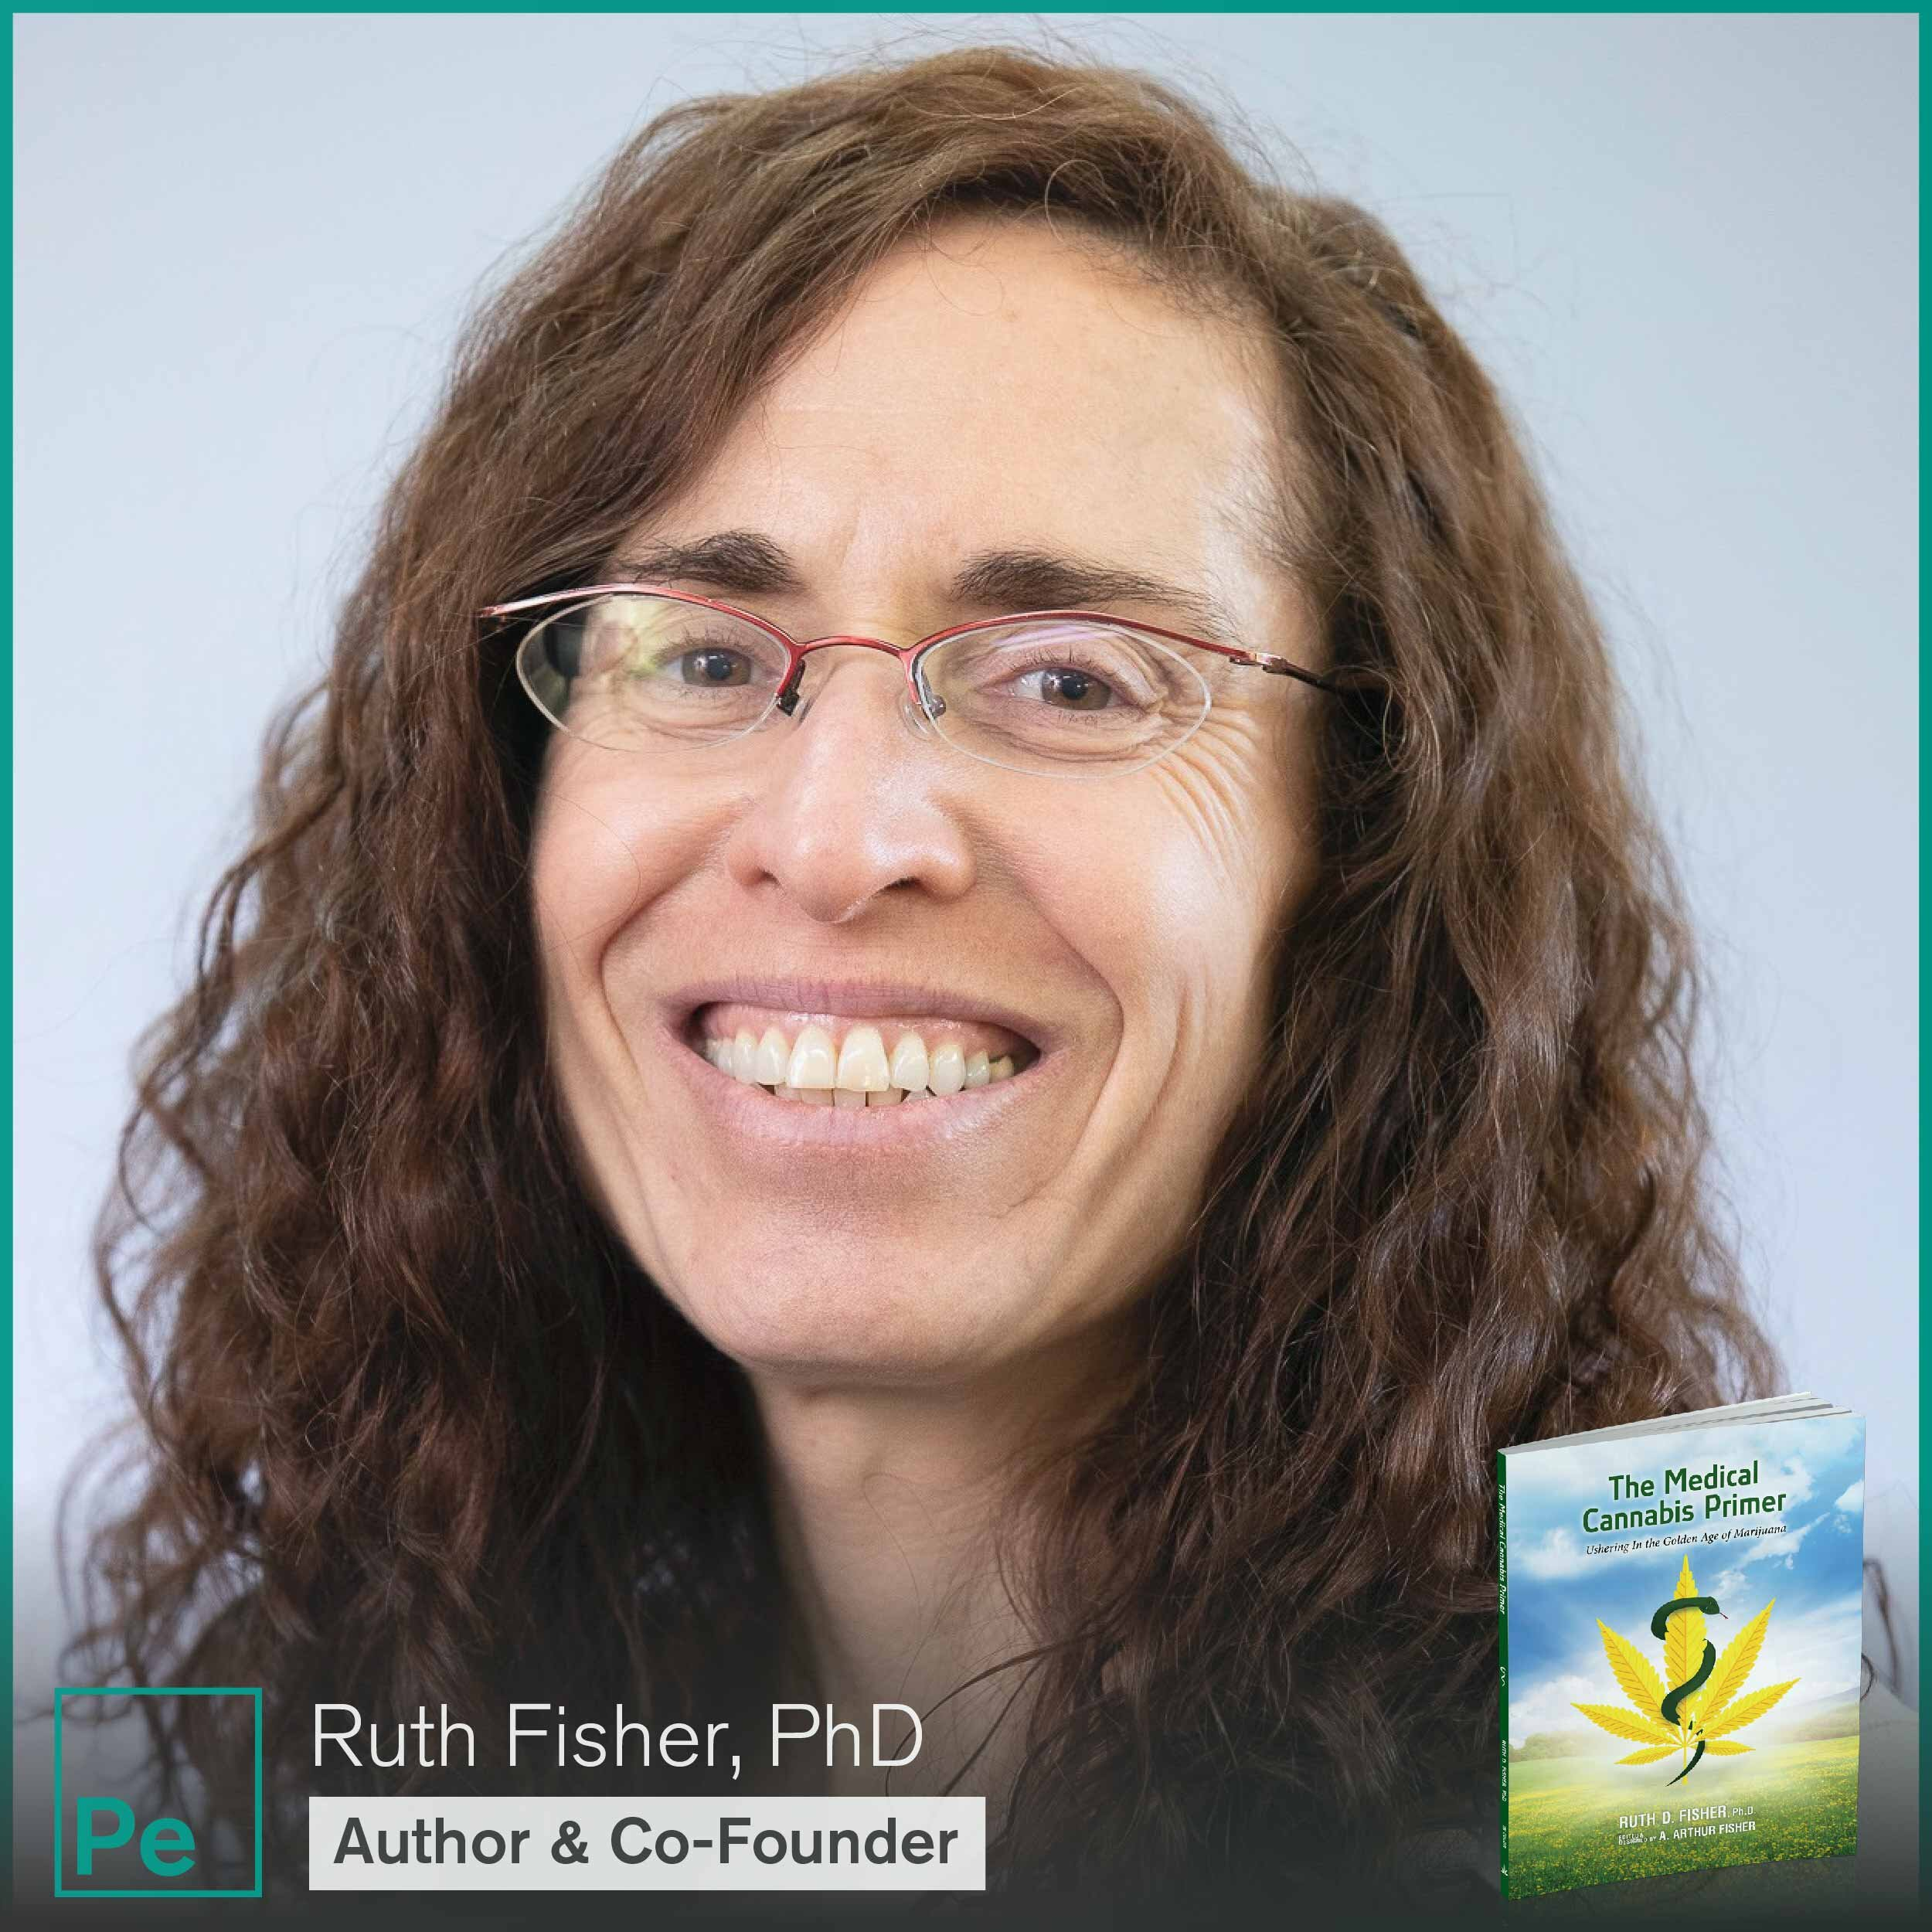 Ruth Fisher, PhD, is the co-author of the Medical Cannabis Primer and co-founder of Cann Dynamics. Ruth is focused on providing medical marijuana patients with solid educational resources to help them find the best cannabis product and consumption method to address their specific medical needs.